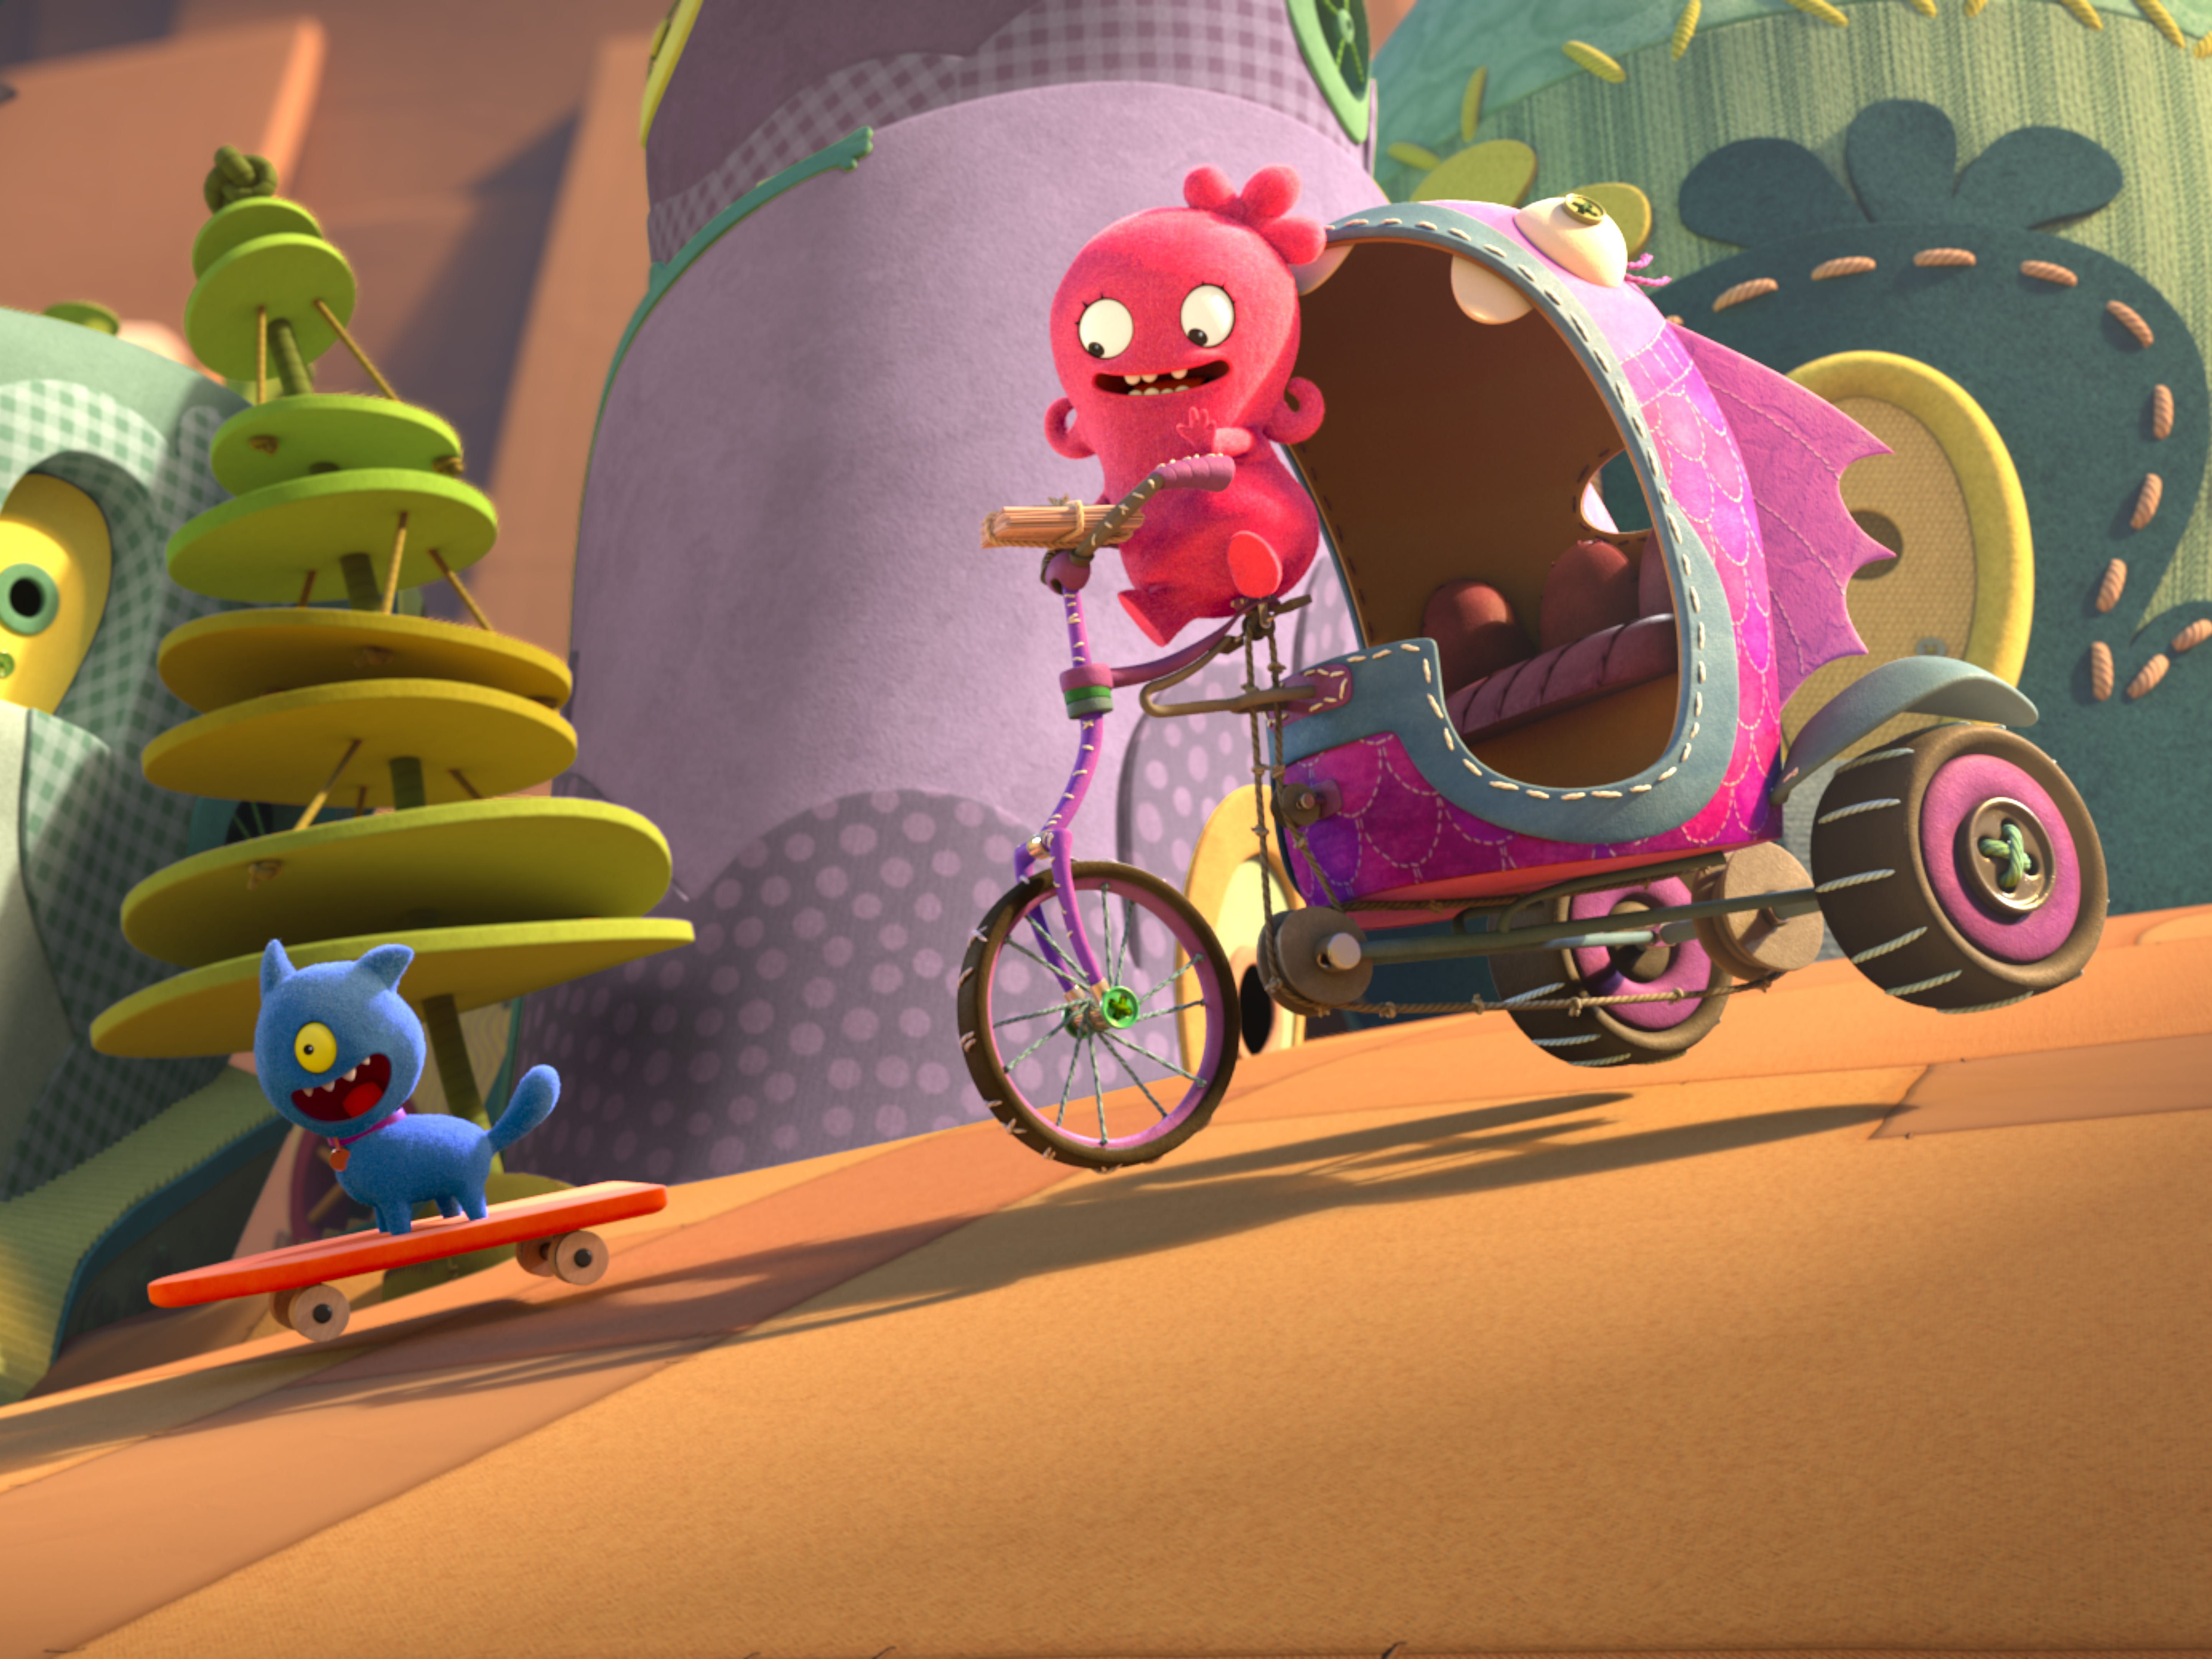 Moxy (voiced by Kelly Clarkson) rides her bike in Uglyville alongside Ugly Dog (Pitbull).